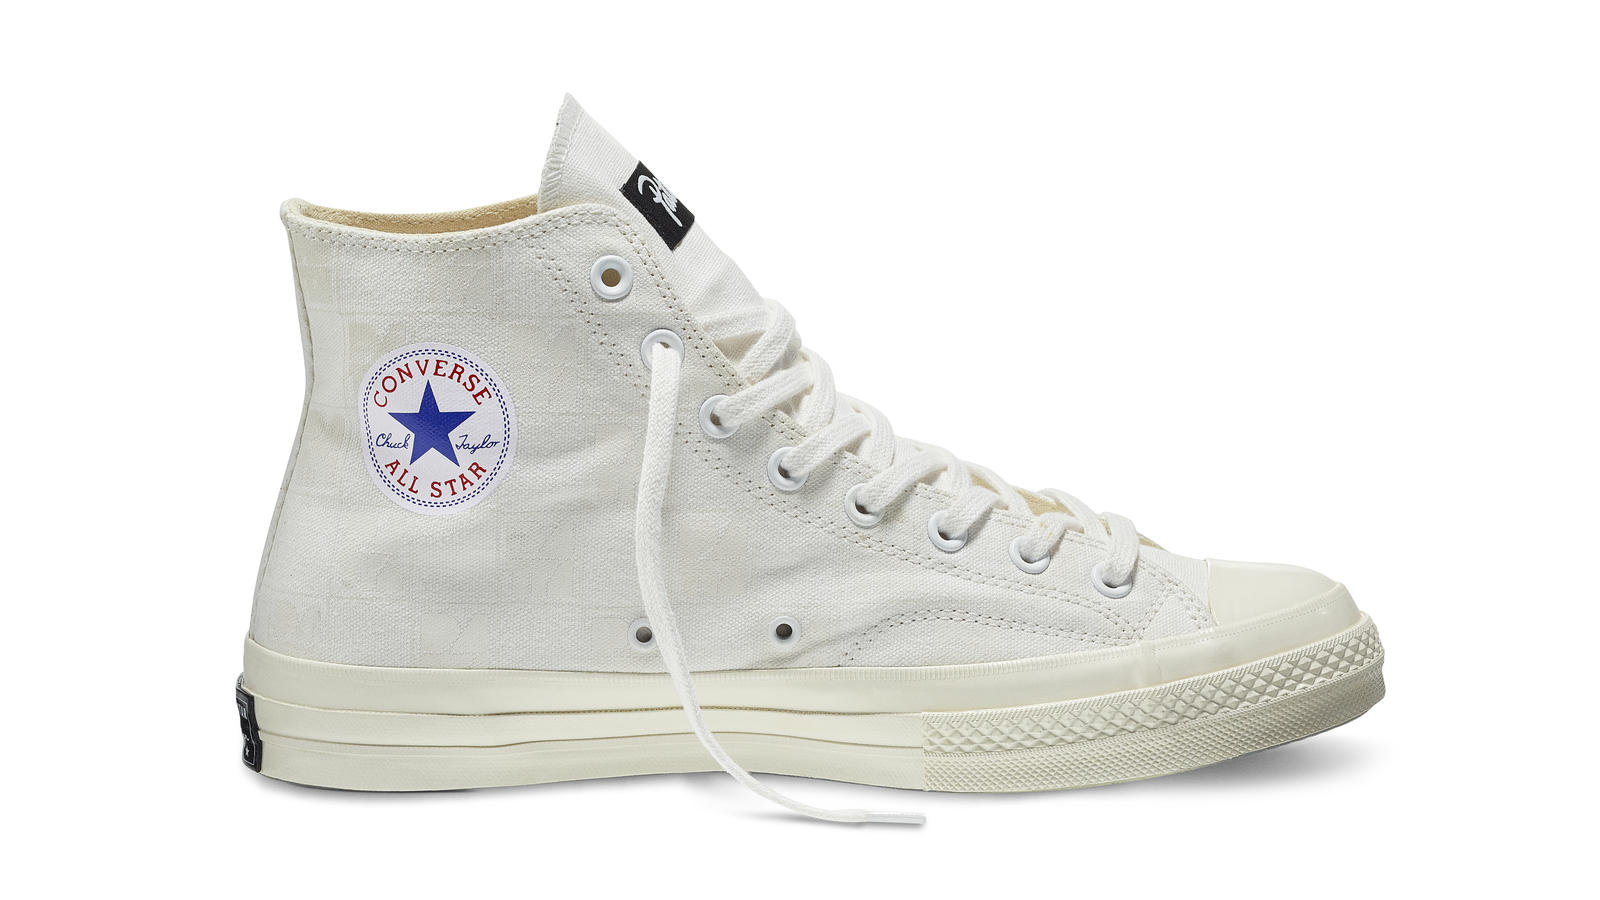 Converse All Star Ct70 Patta10 White White Original